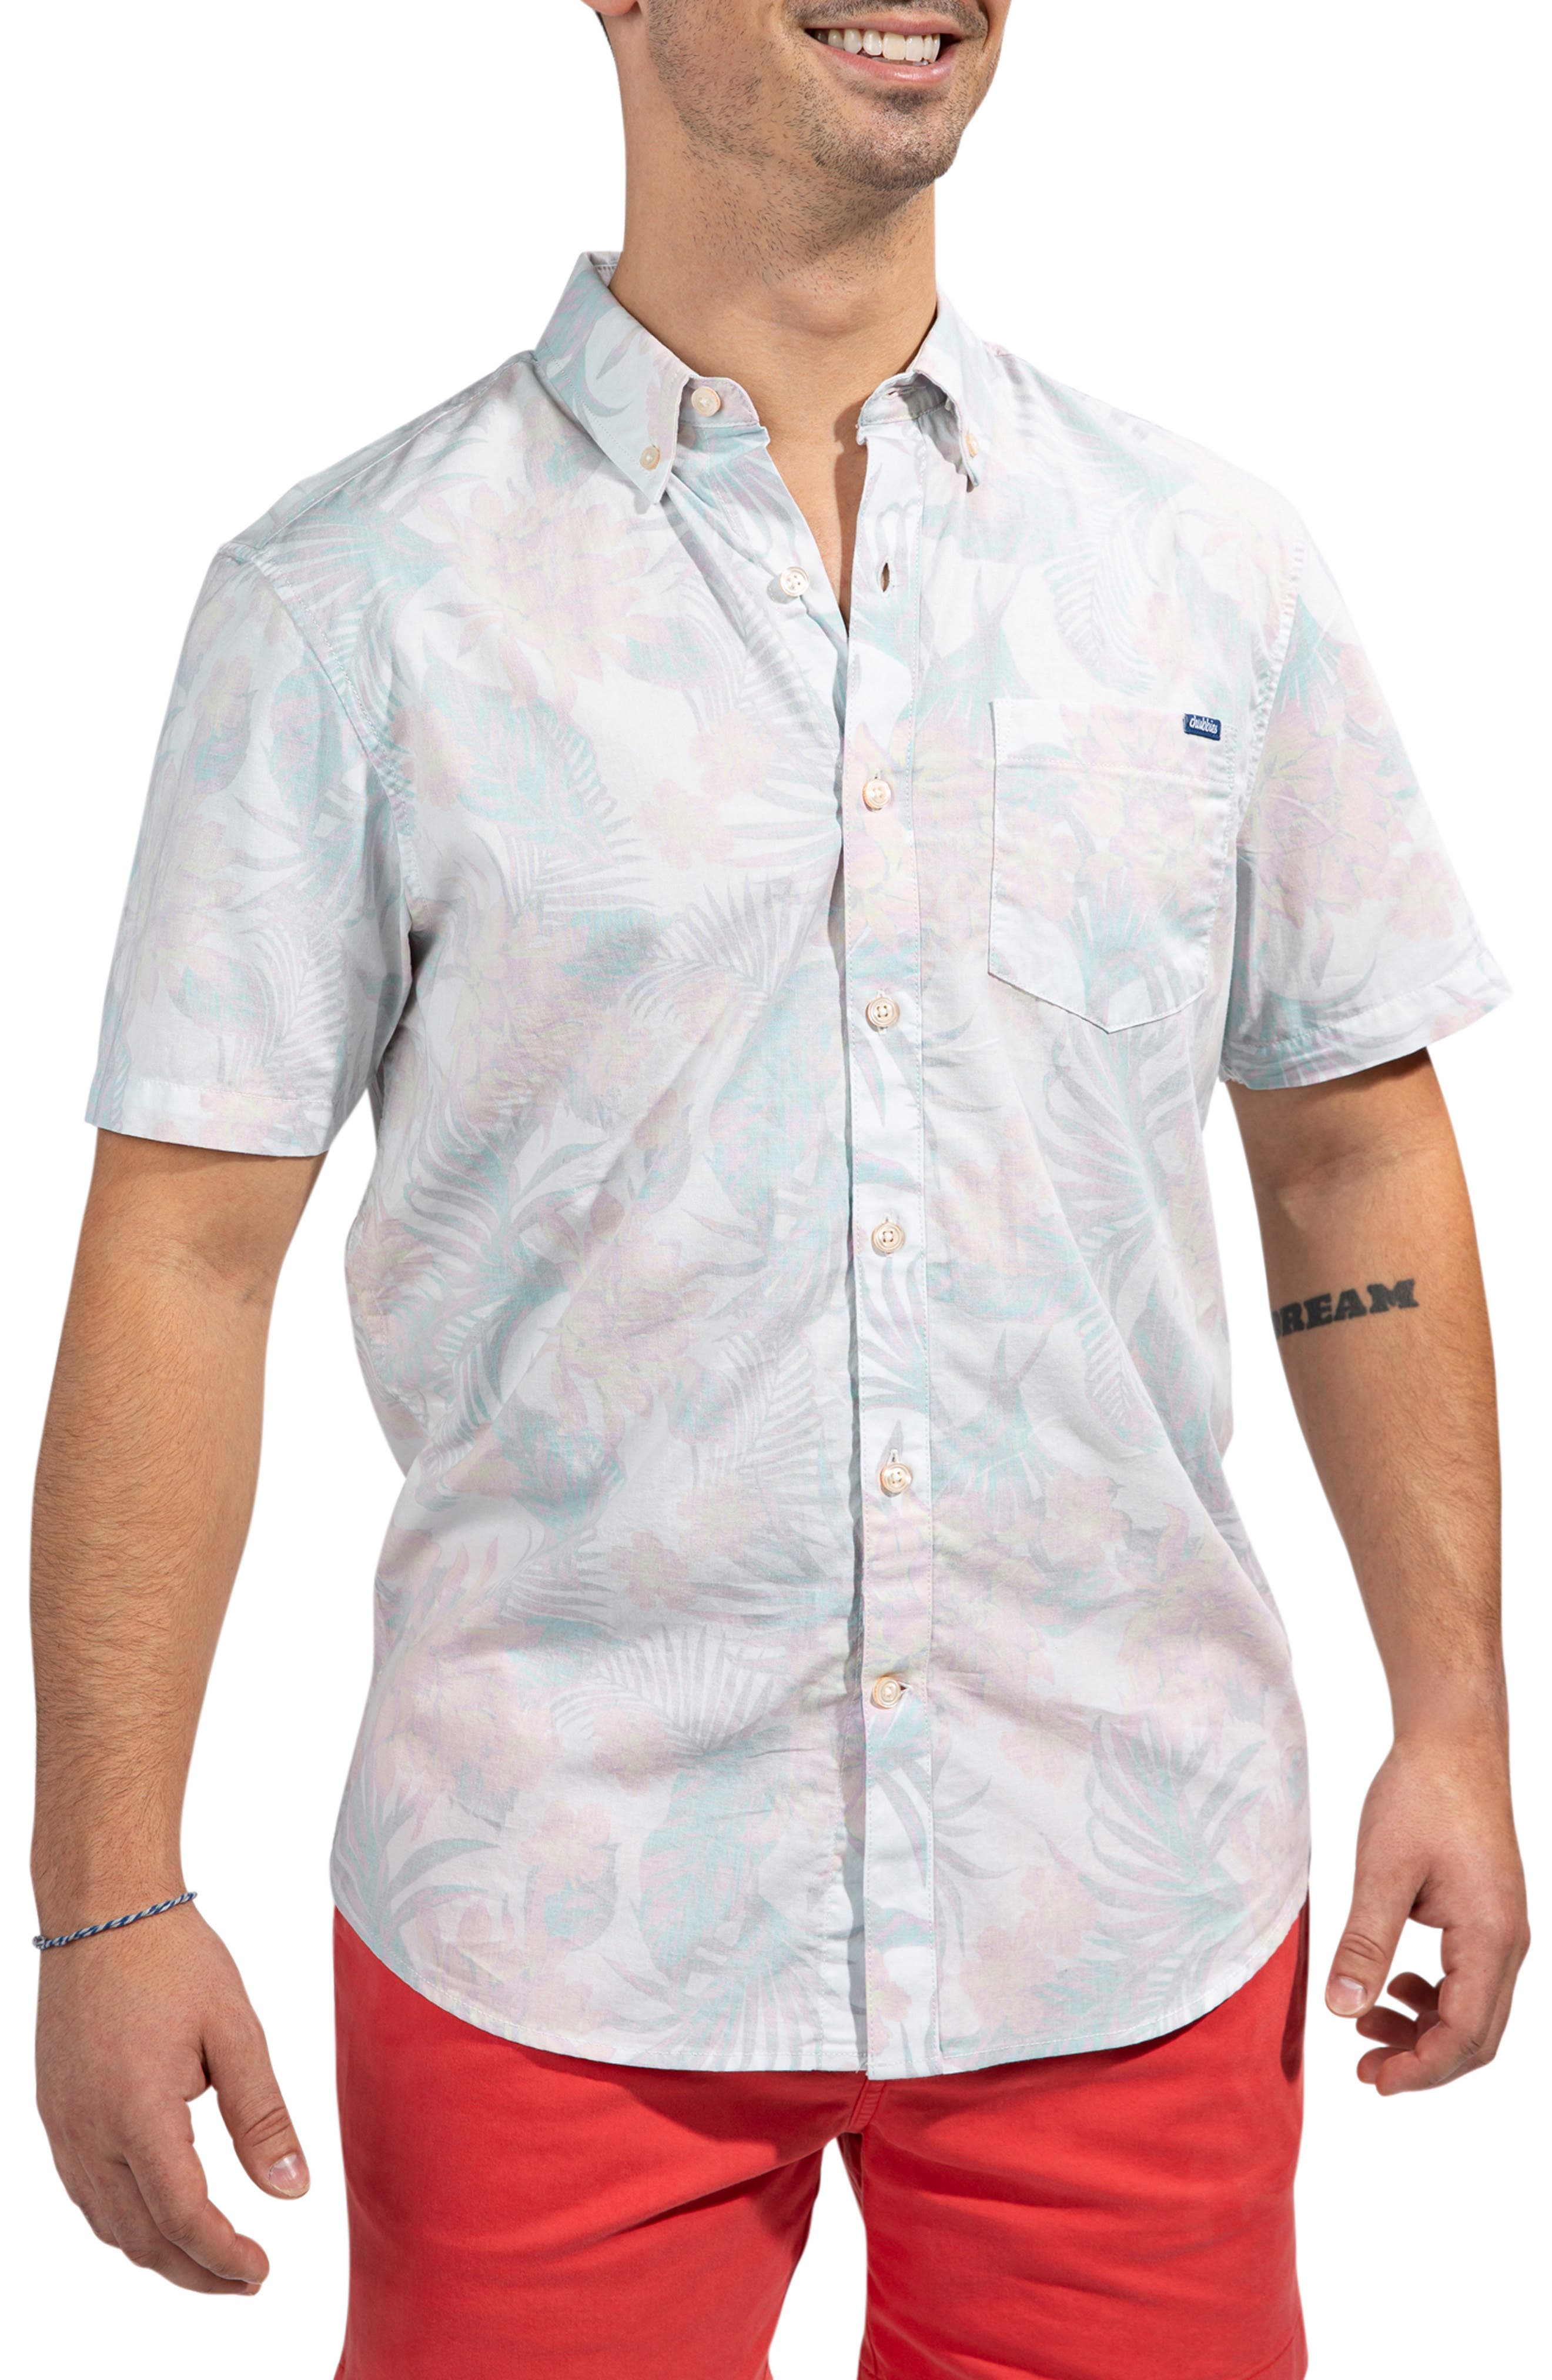 The Flordom Floral Short Sleeve Button-Down Shirt